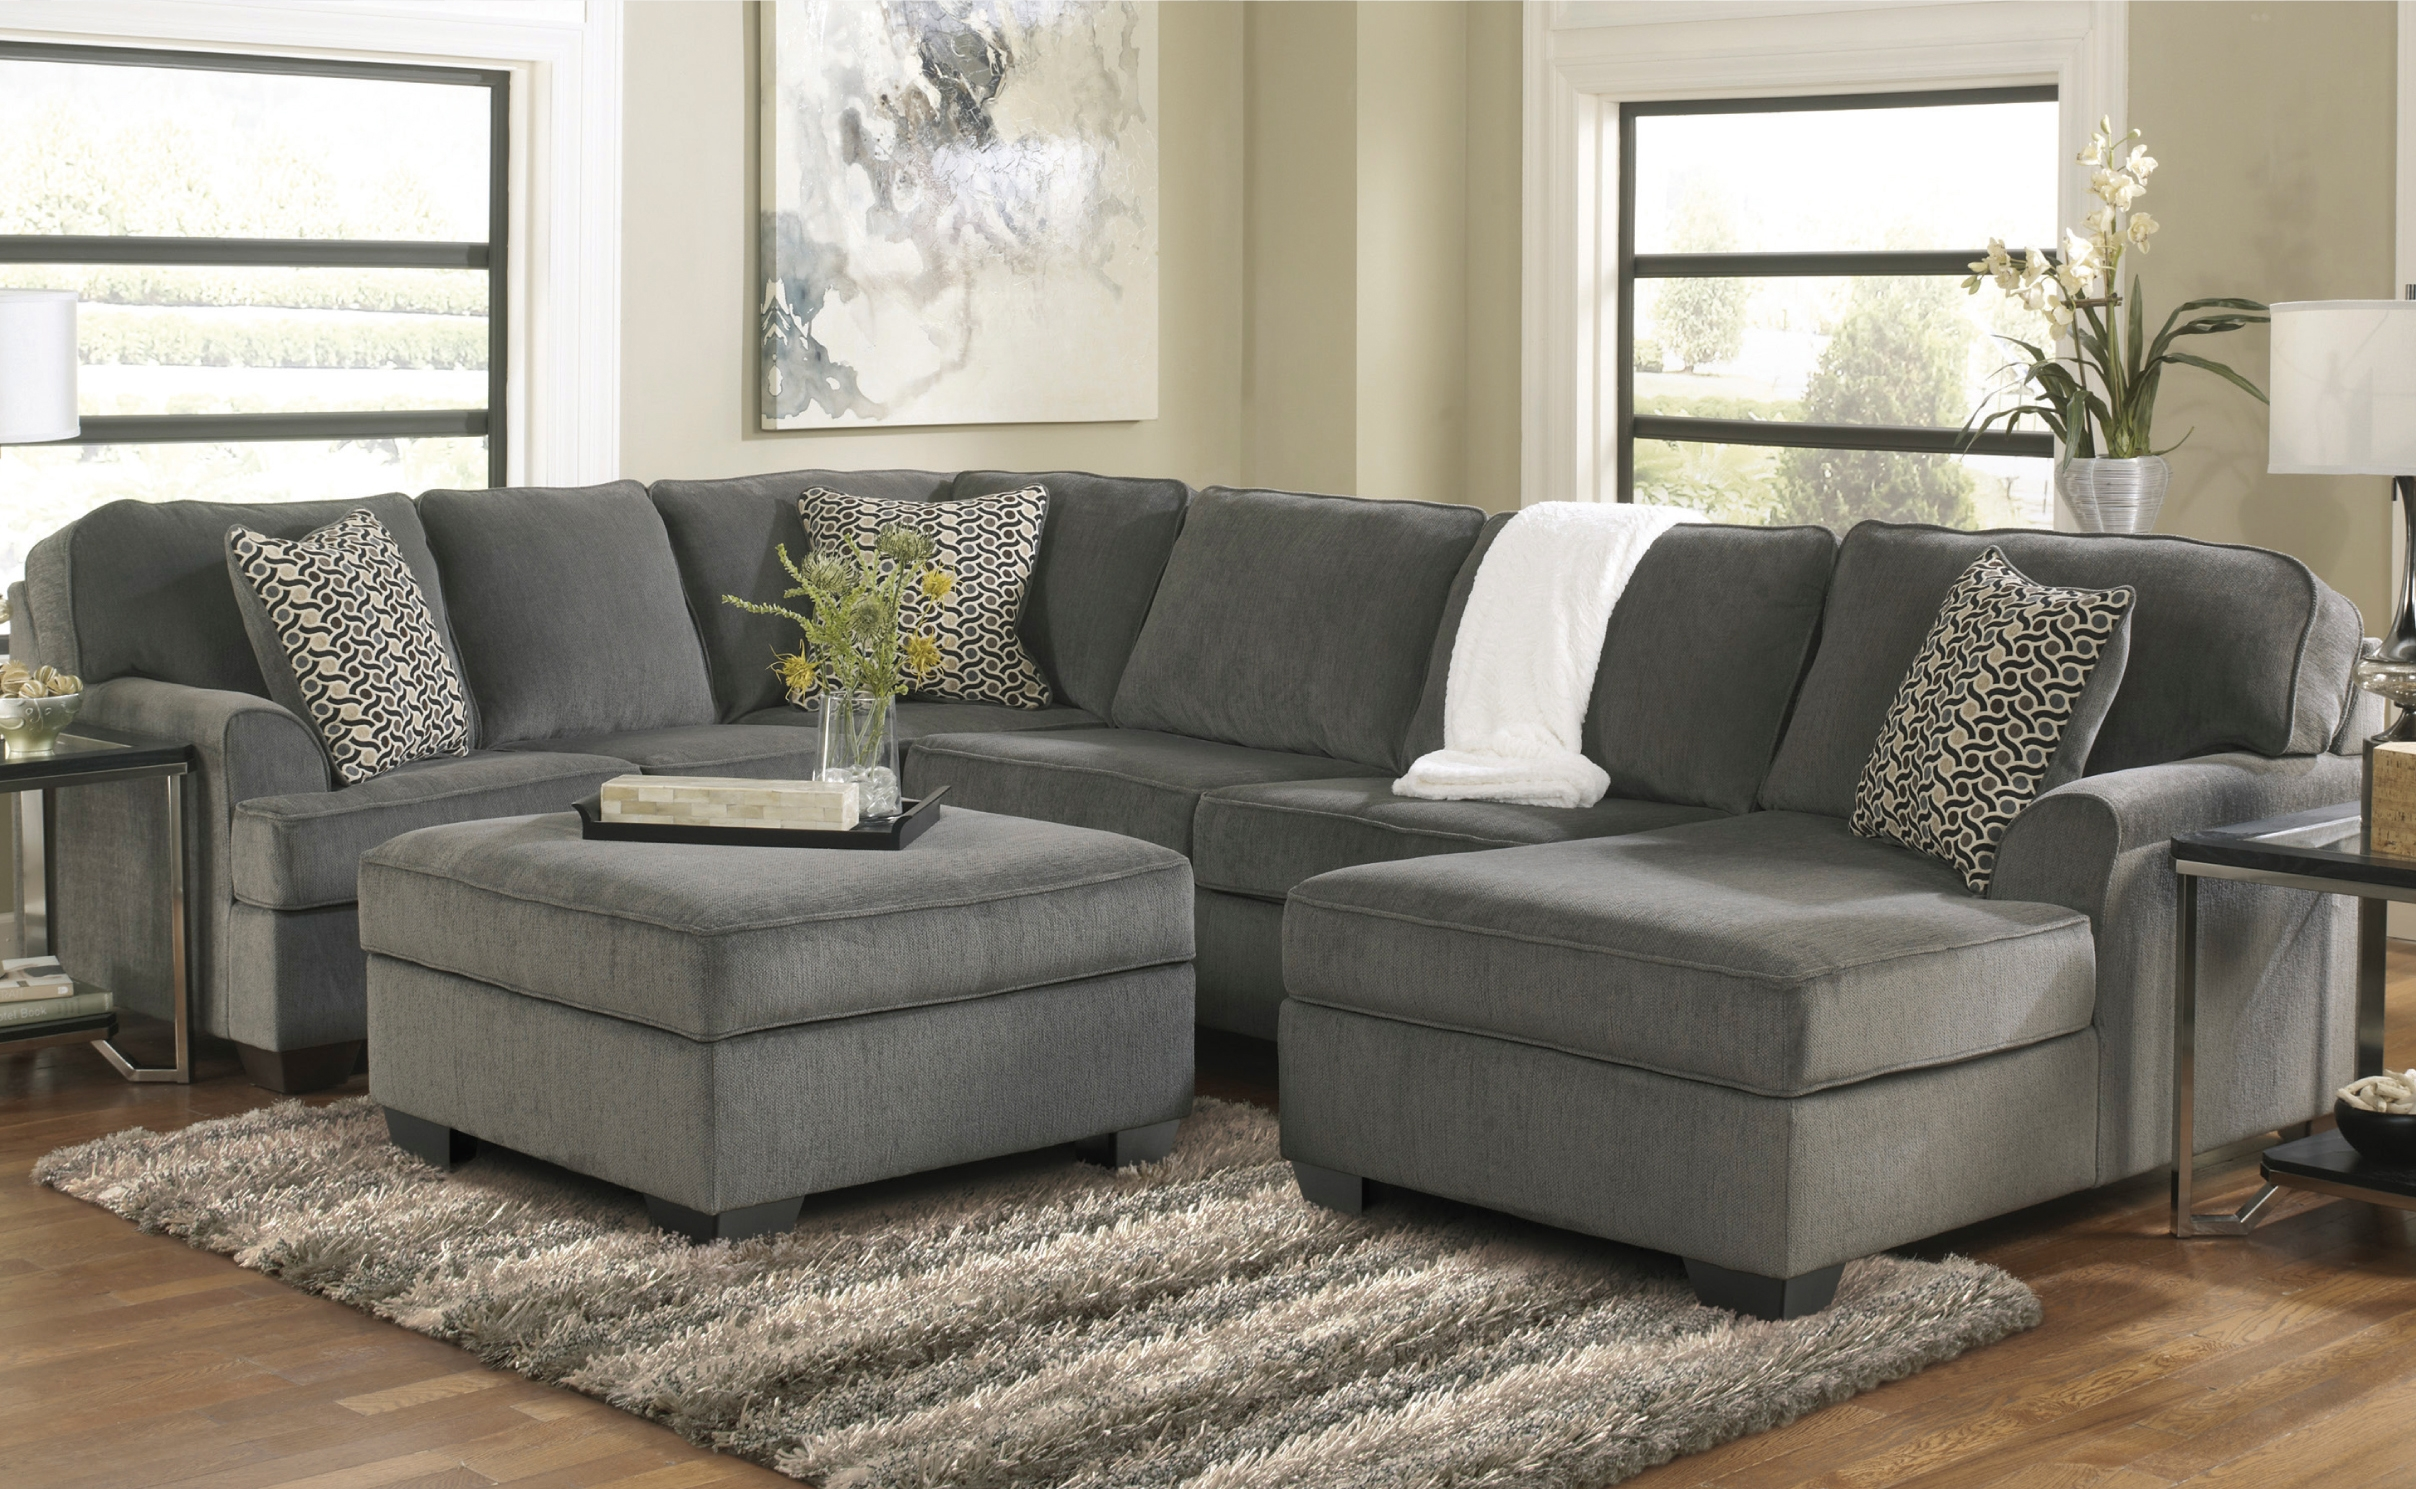 12 best ideas of closeout sectional sofas for Furnisher sale